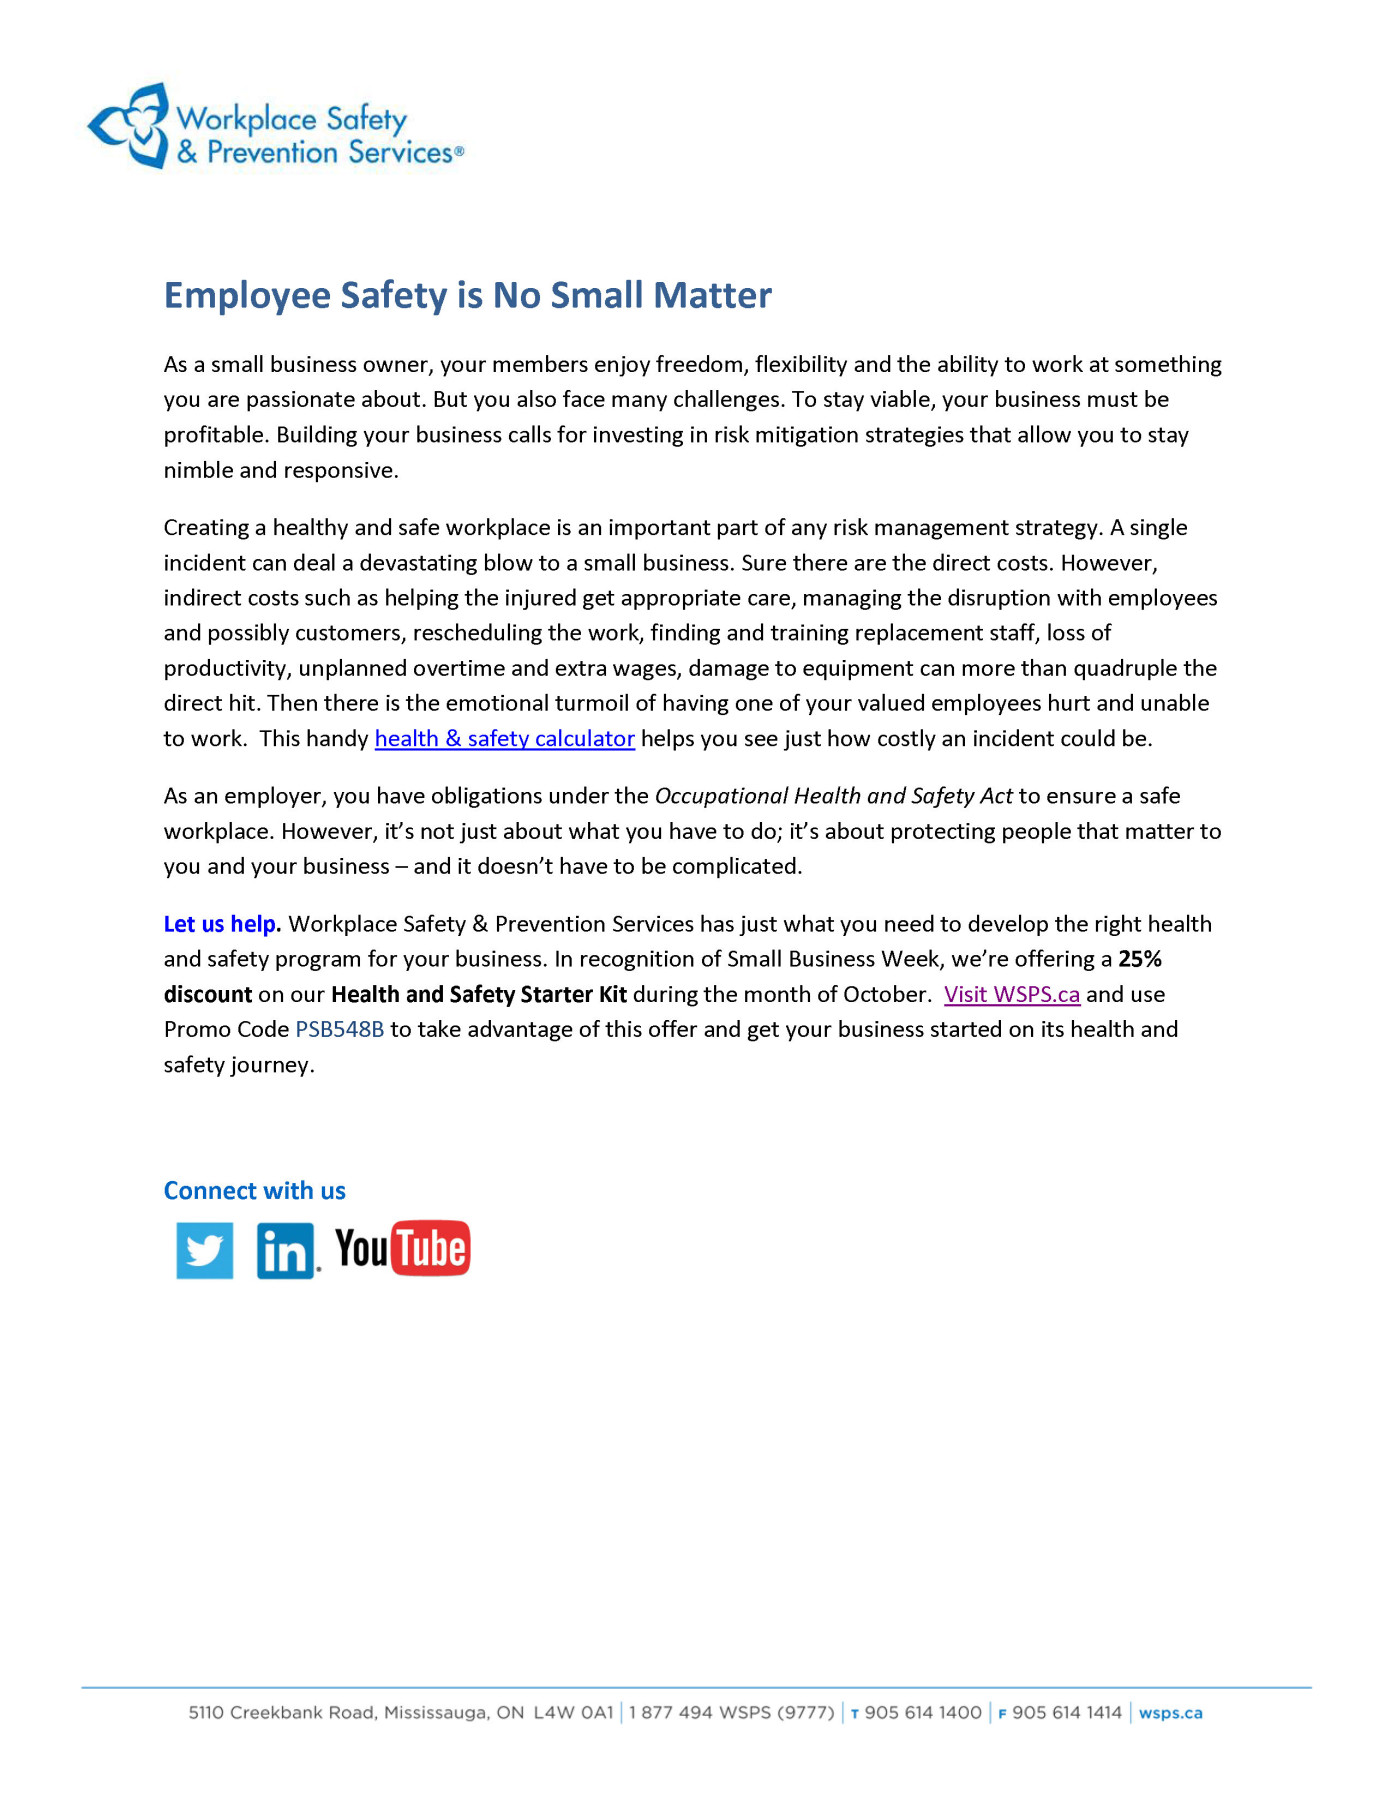 Employee Safety is no small matter_CoC